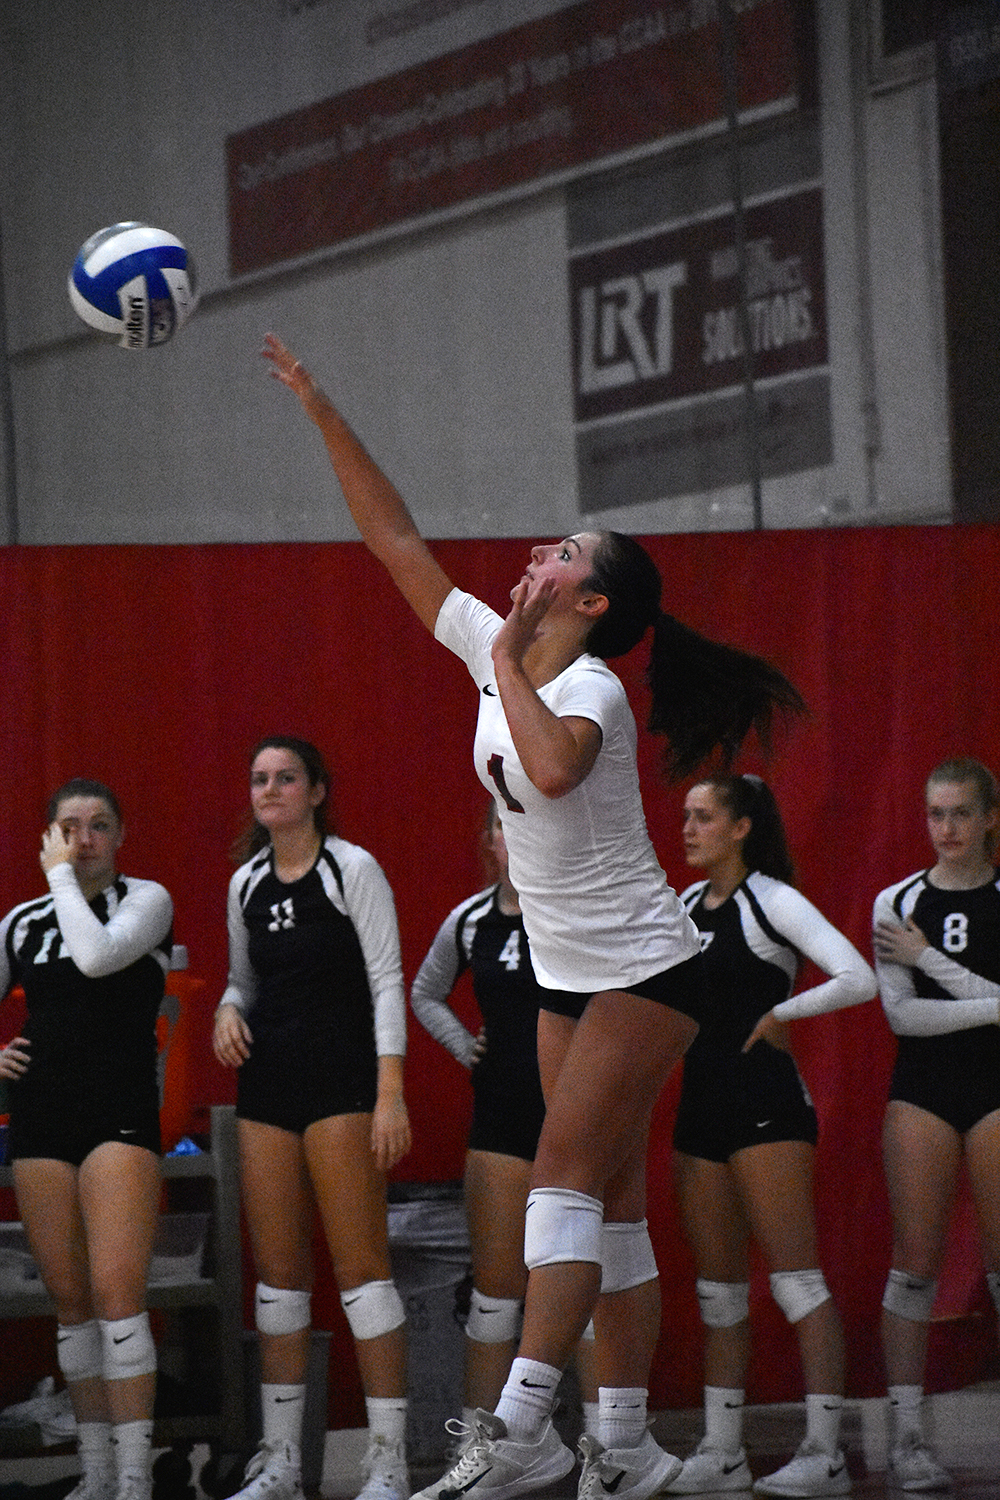 Libero Brooke Fogel back-row attacks the ball against Cal State San Bernardino earlier in the year in this archived photo. Photo credit: Julia Maldonado